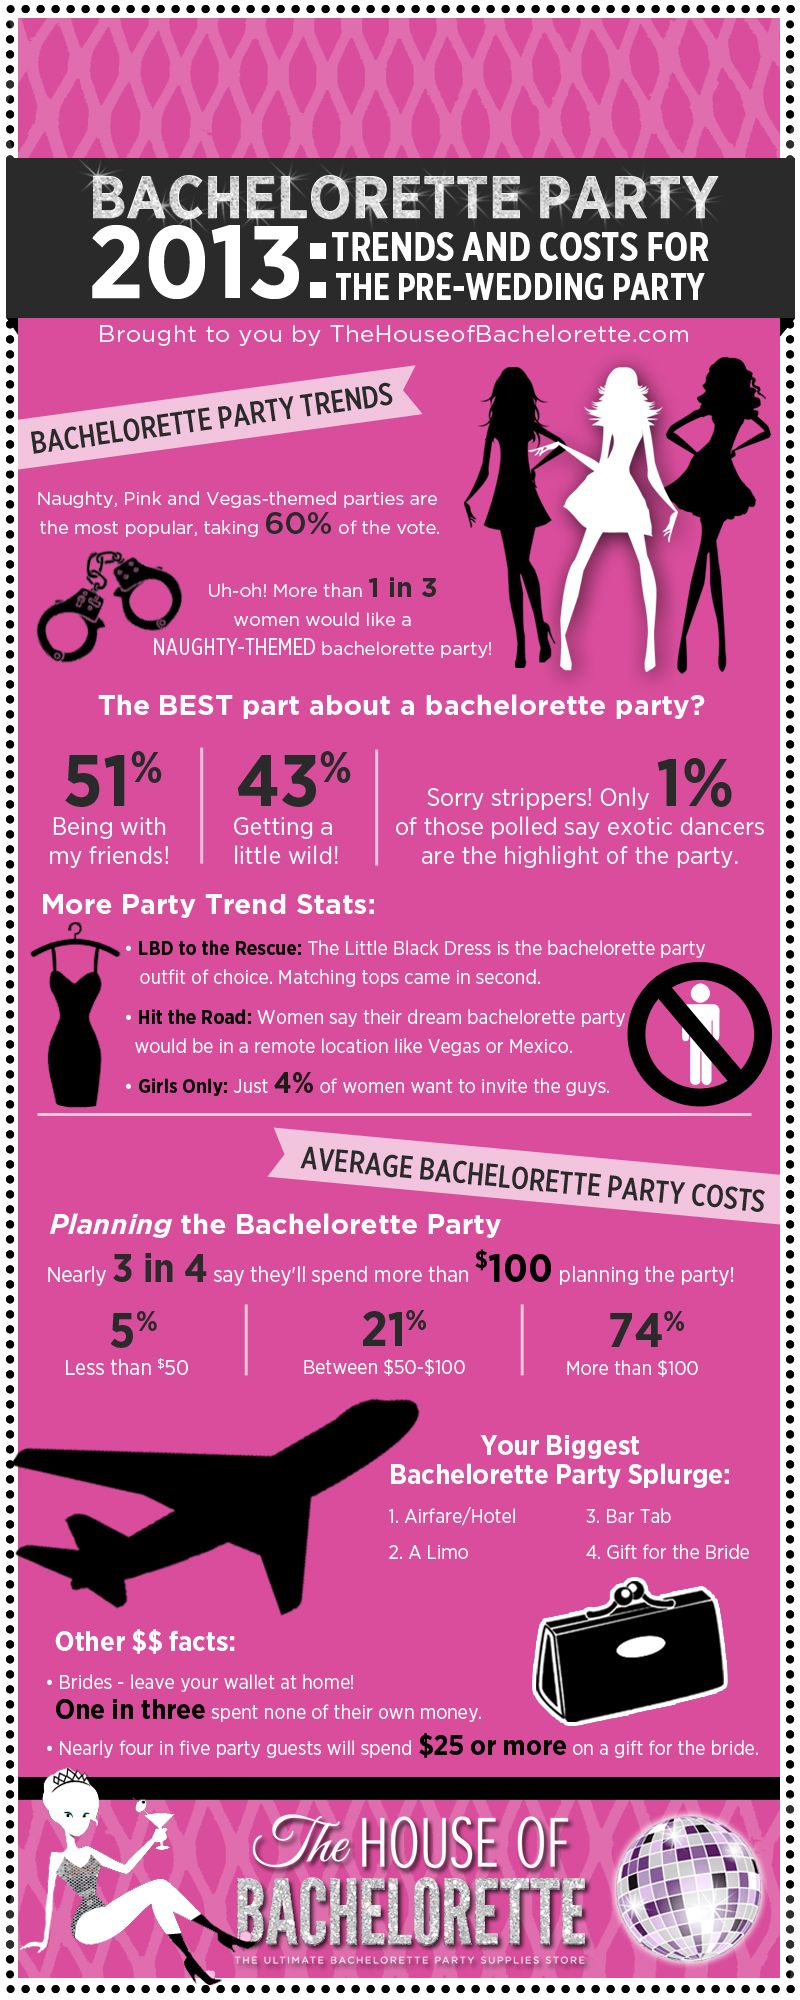 21 Bachelorette Party Invite Wording Ideas | Bachelorette parties ...